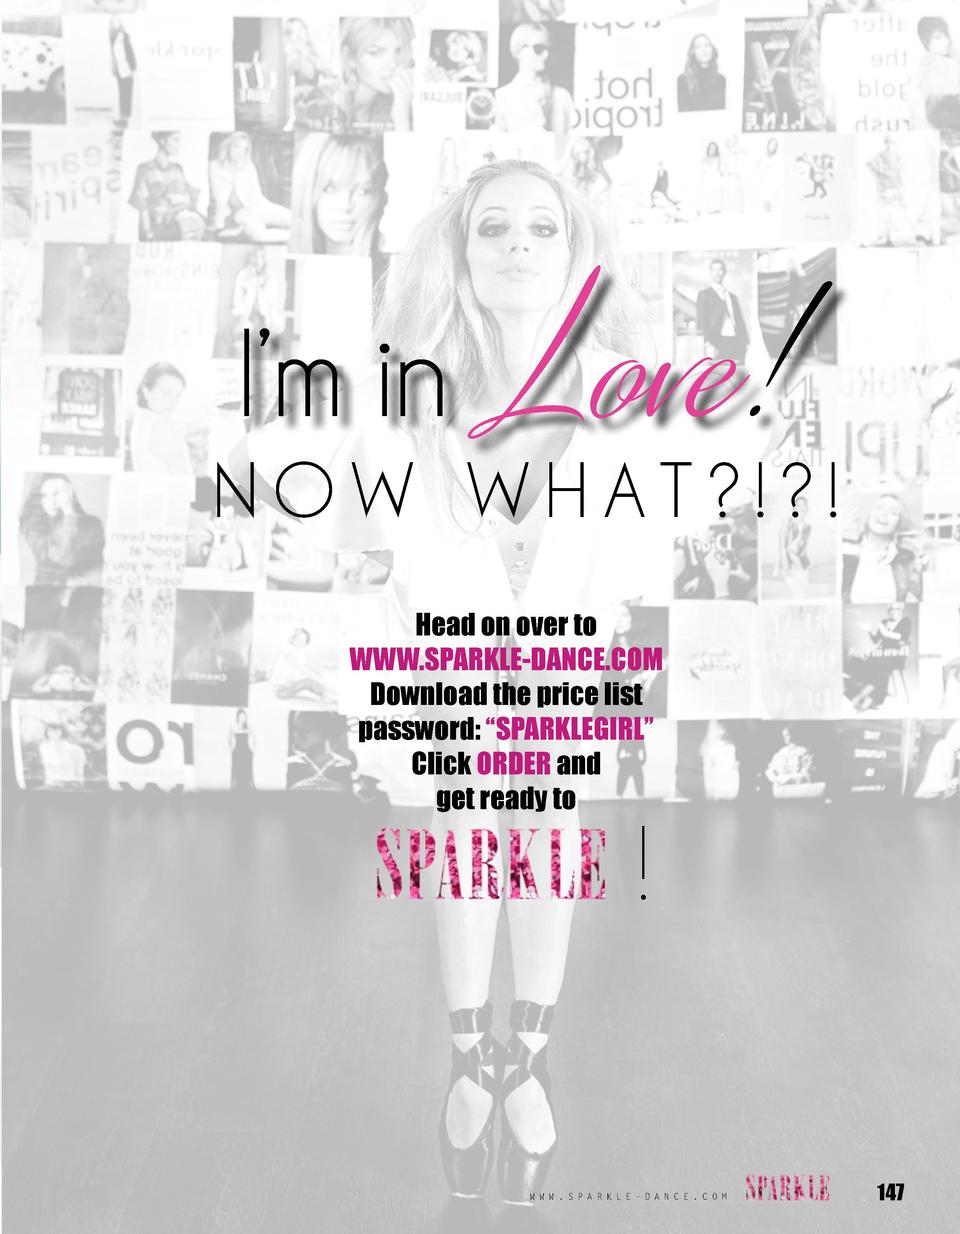 s  I   m in  Love   NOW WHAT     Head on over to WWW.SPARKLE-DANCE.COM Download the price list password     SPARKLEGIRL   ...